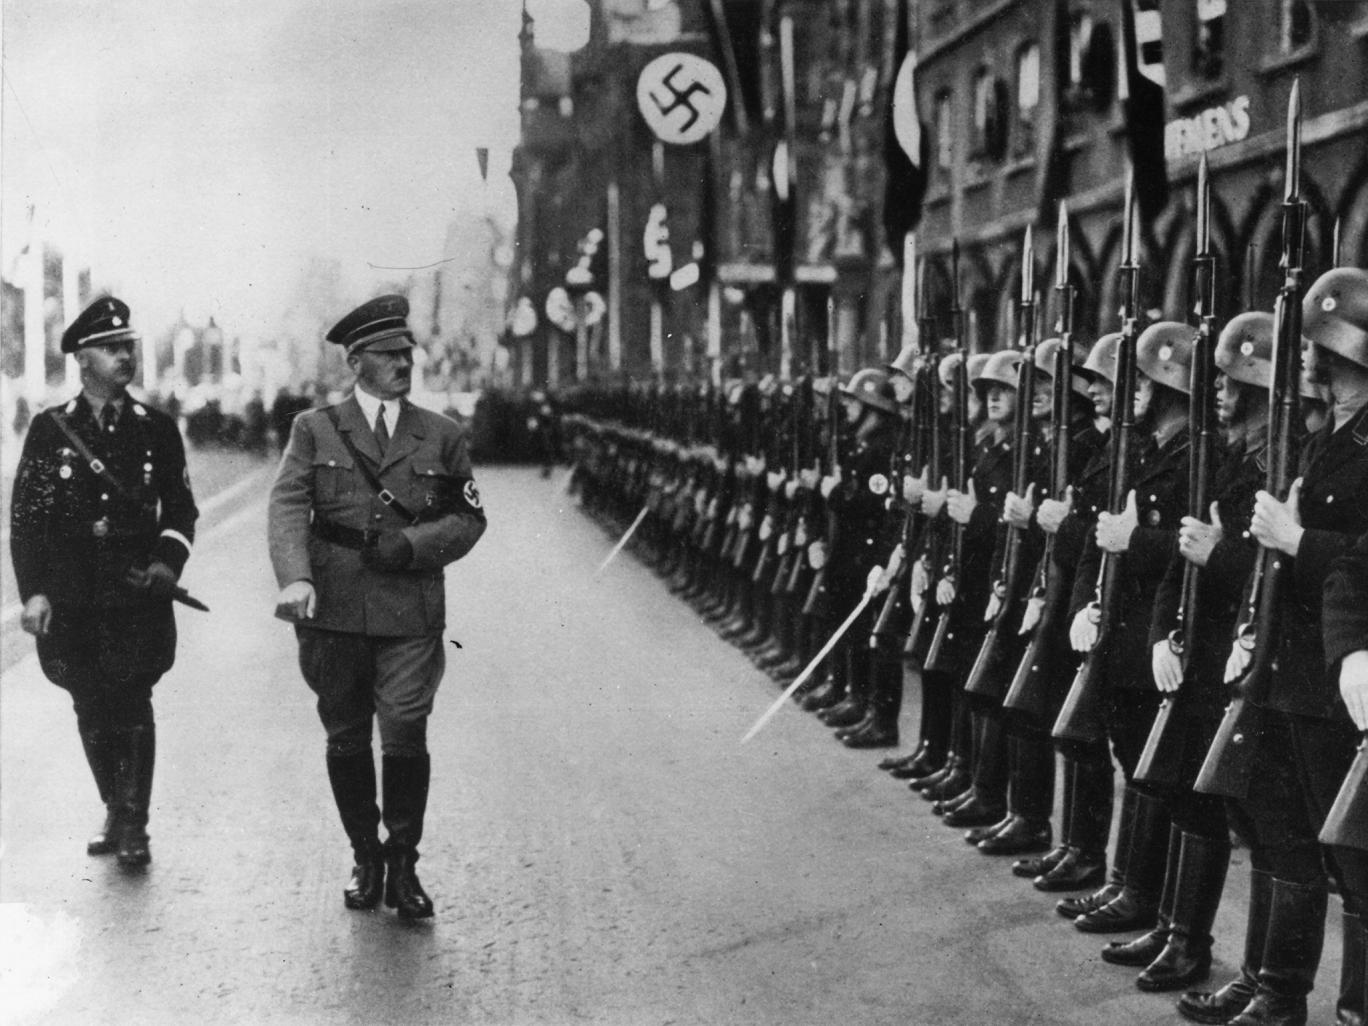 an analysis of the topic of the role of adolf hitler during the nazi germany Factors that played the most important role in bringing the nazi party to power in germany adolf hitler and the nazi party are a major part of recent history.